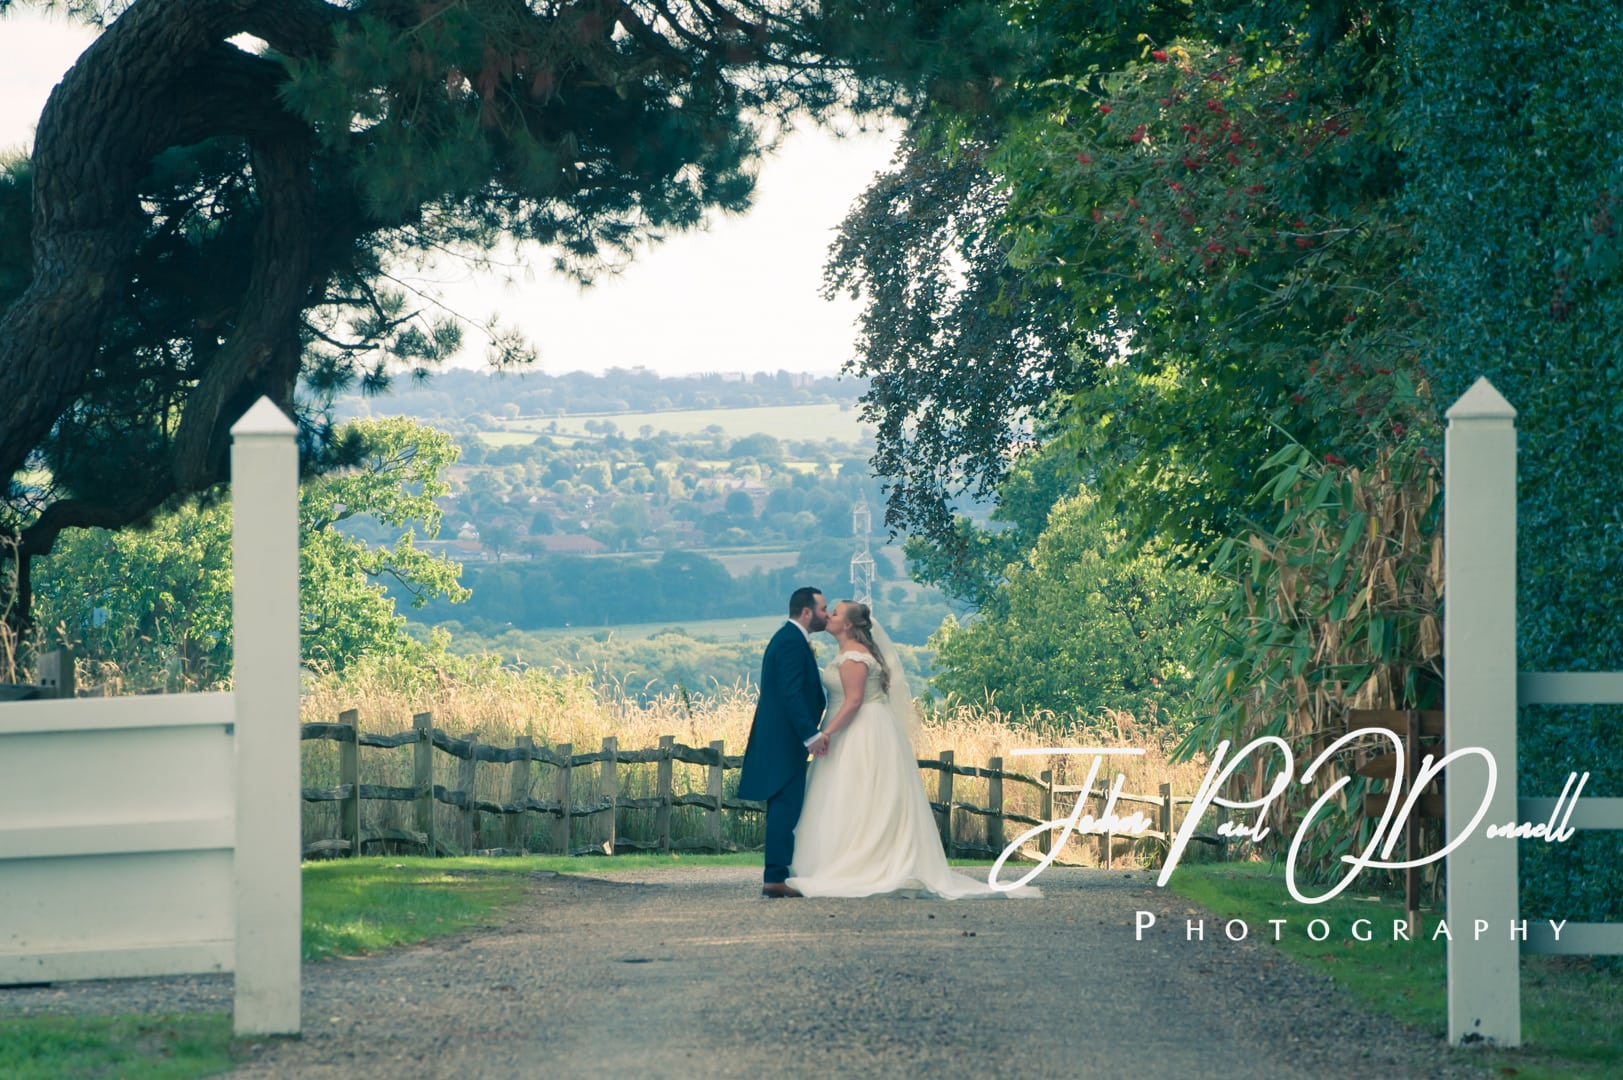 Emmie and Taylors wedding at Gaynes Park